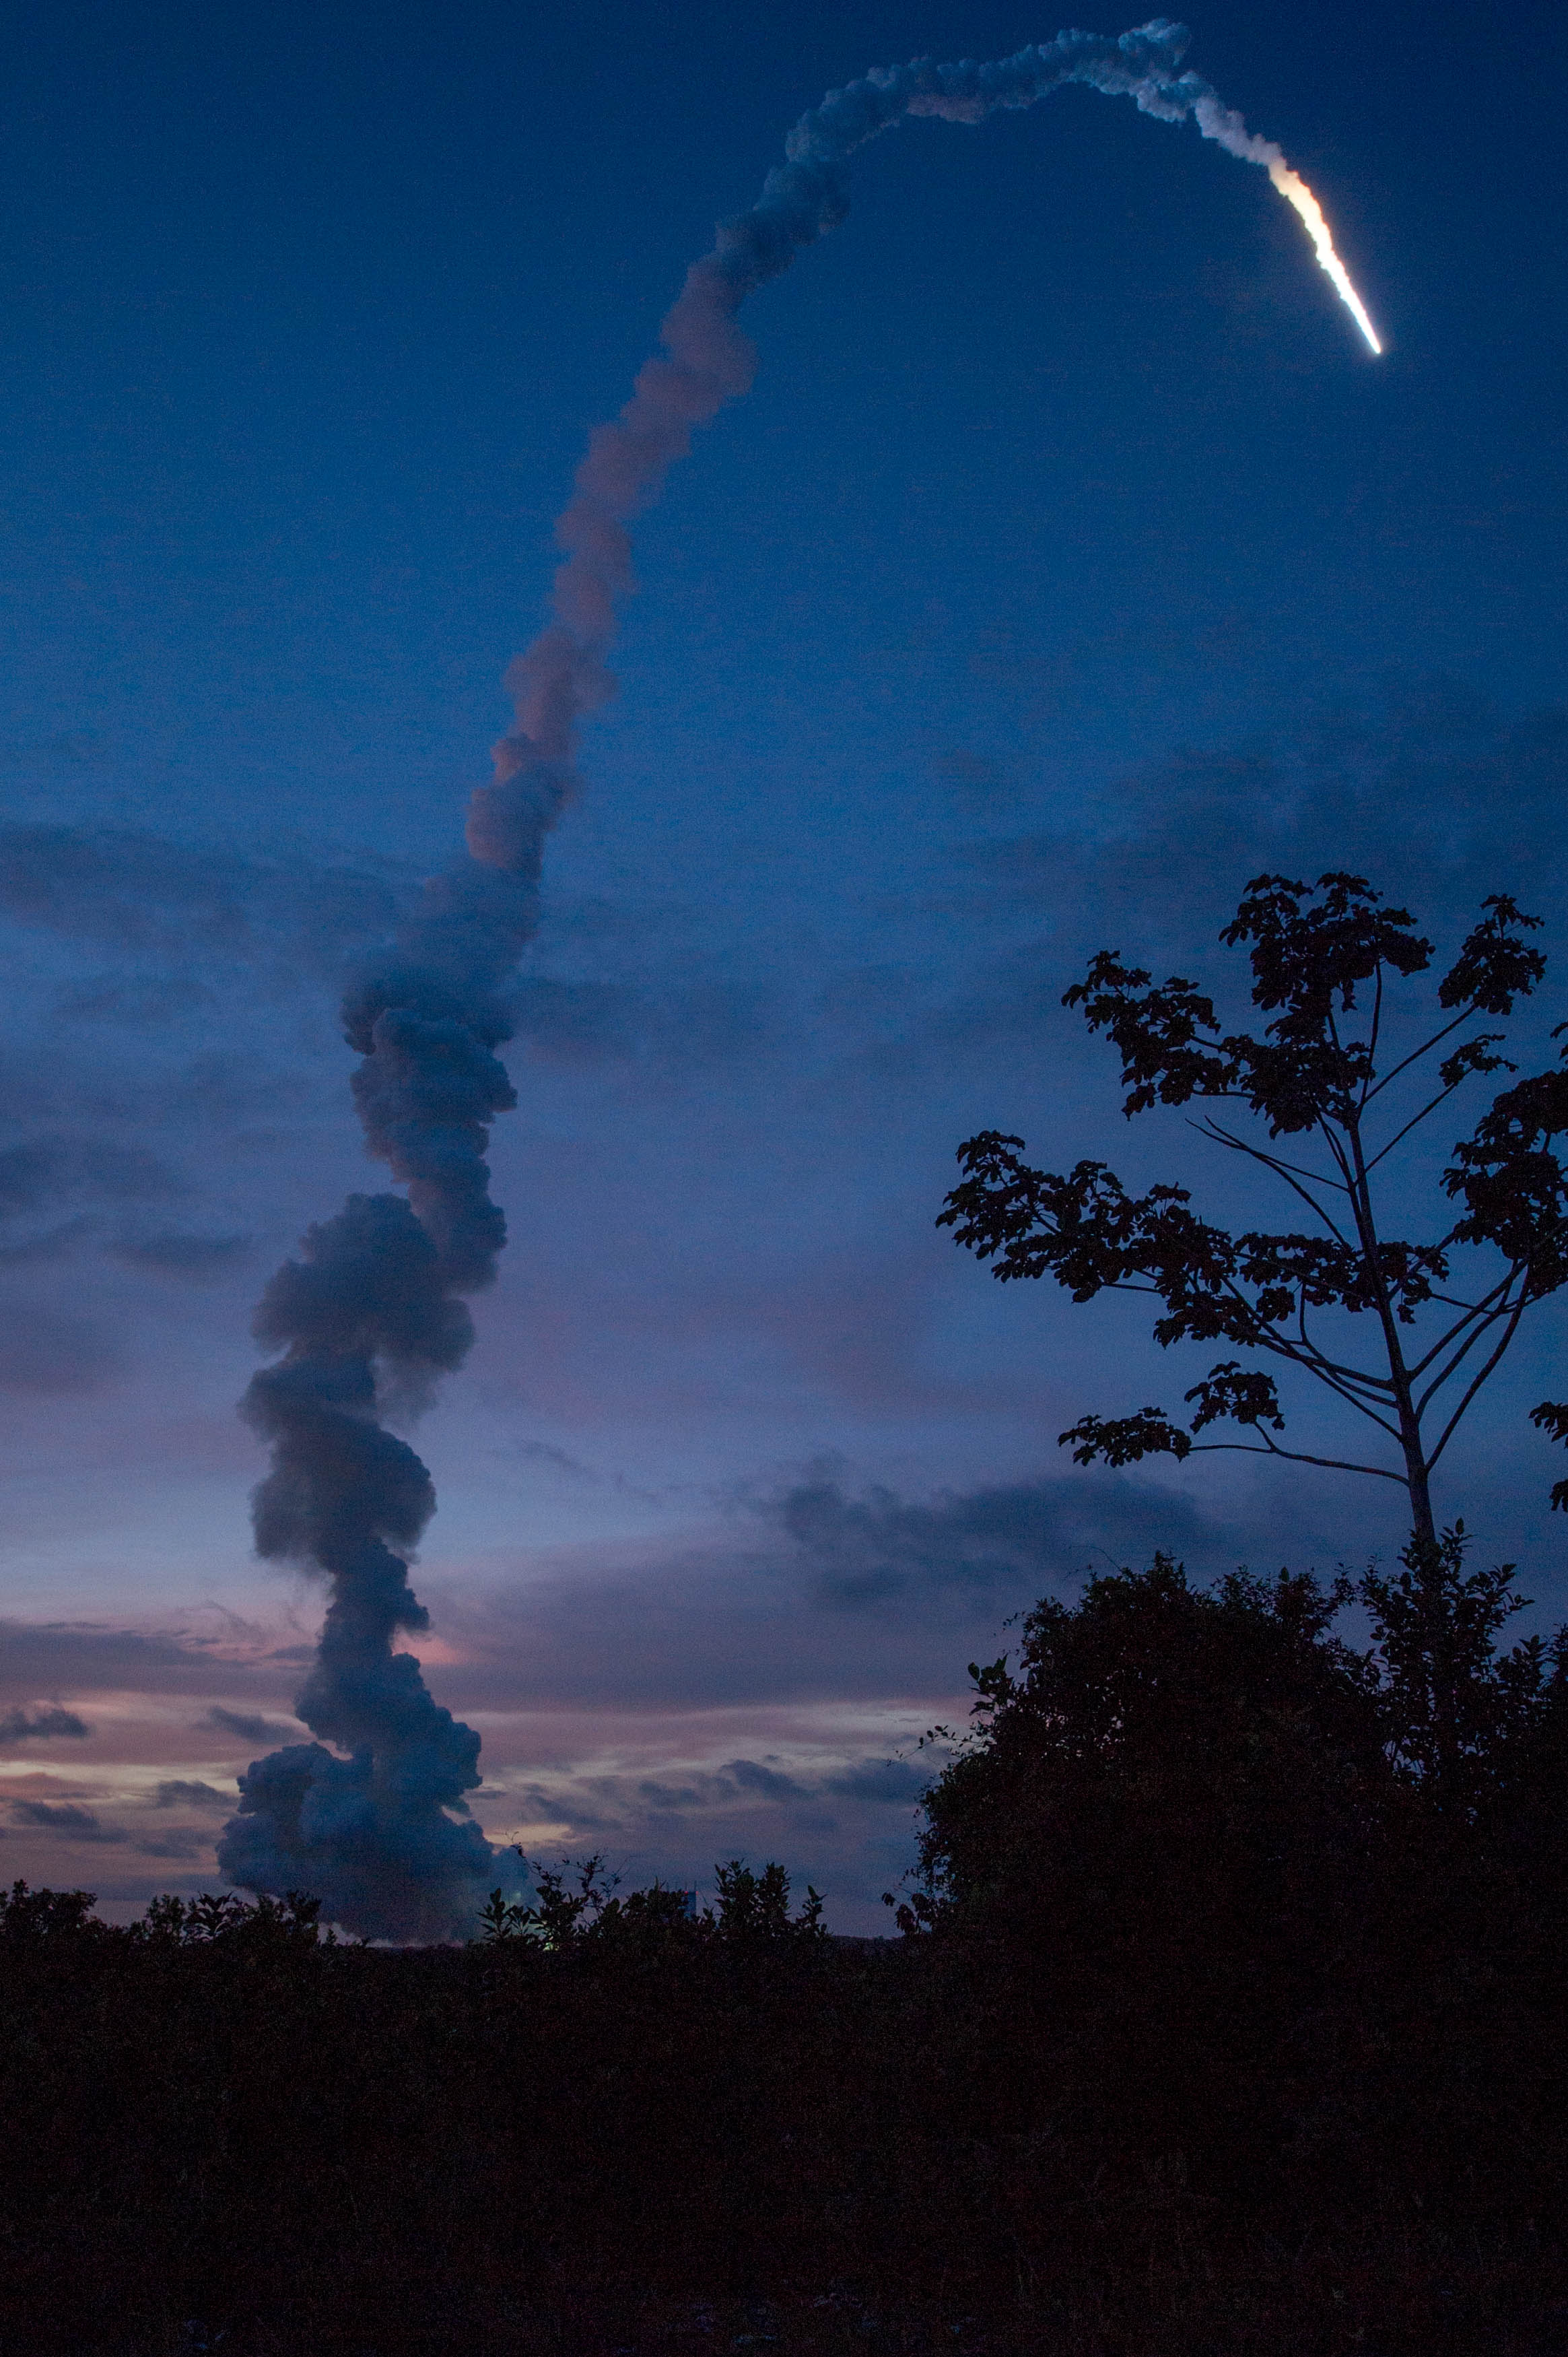 ATV-4 Soars to ISS